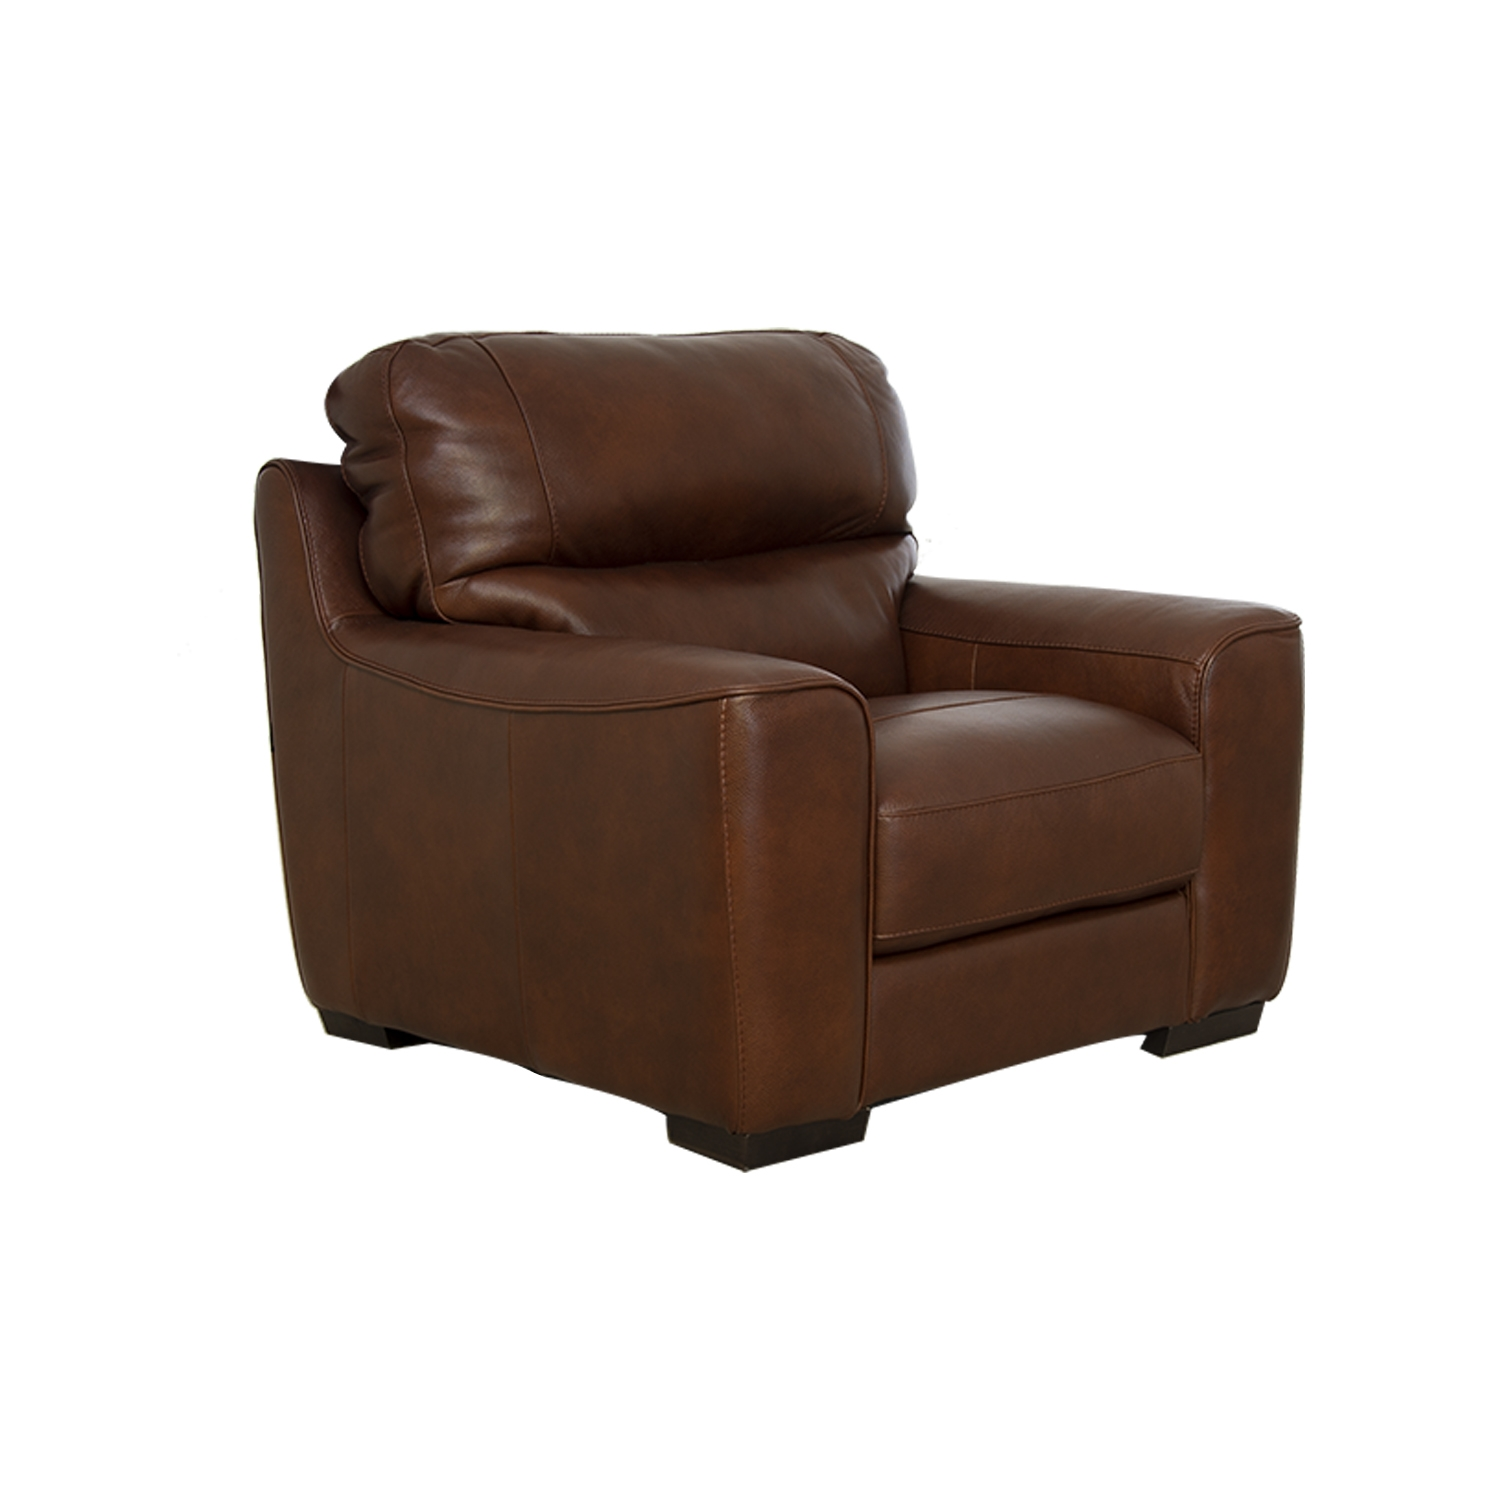 Image of Italia Living Prato Leather Armchair, Brown